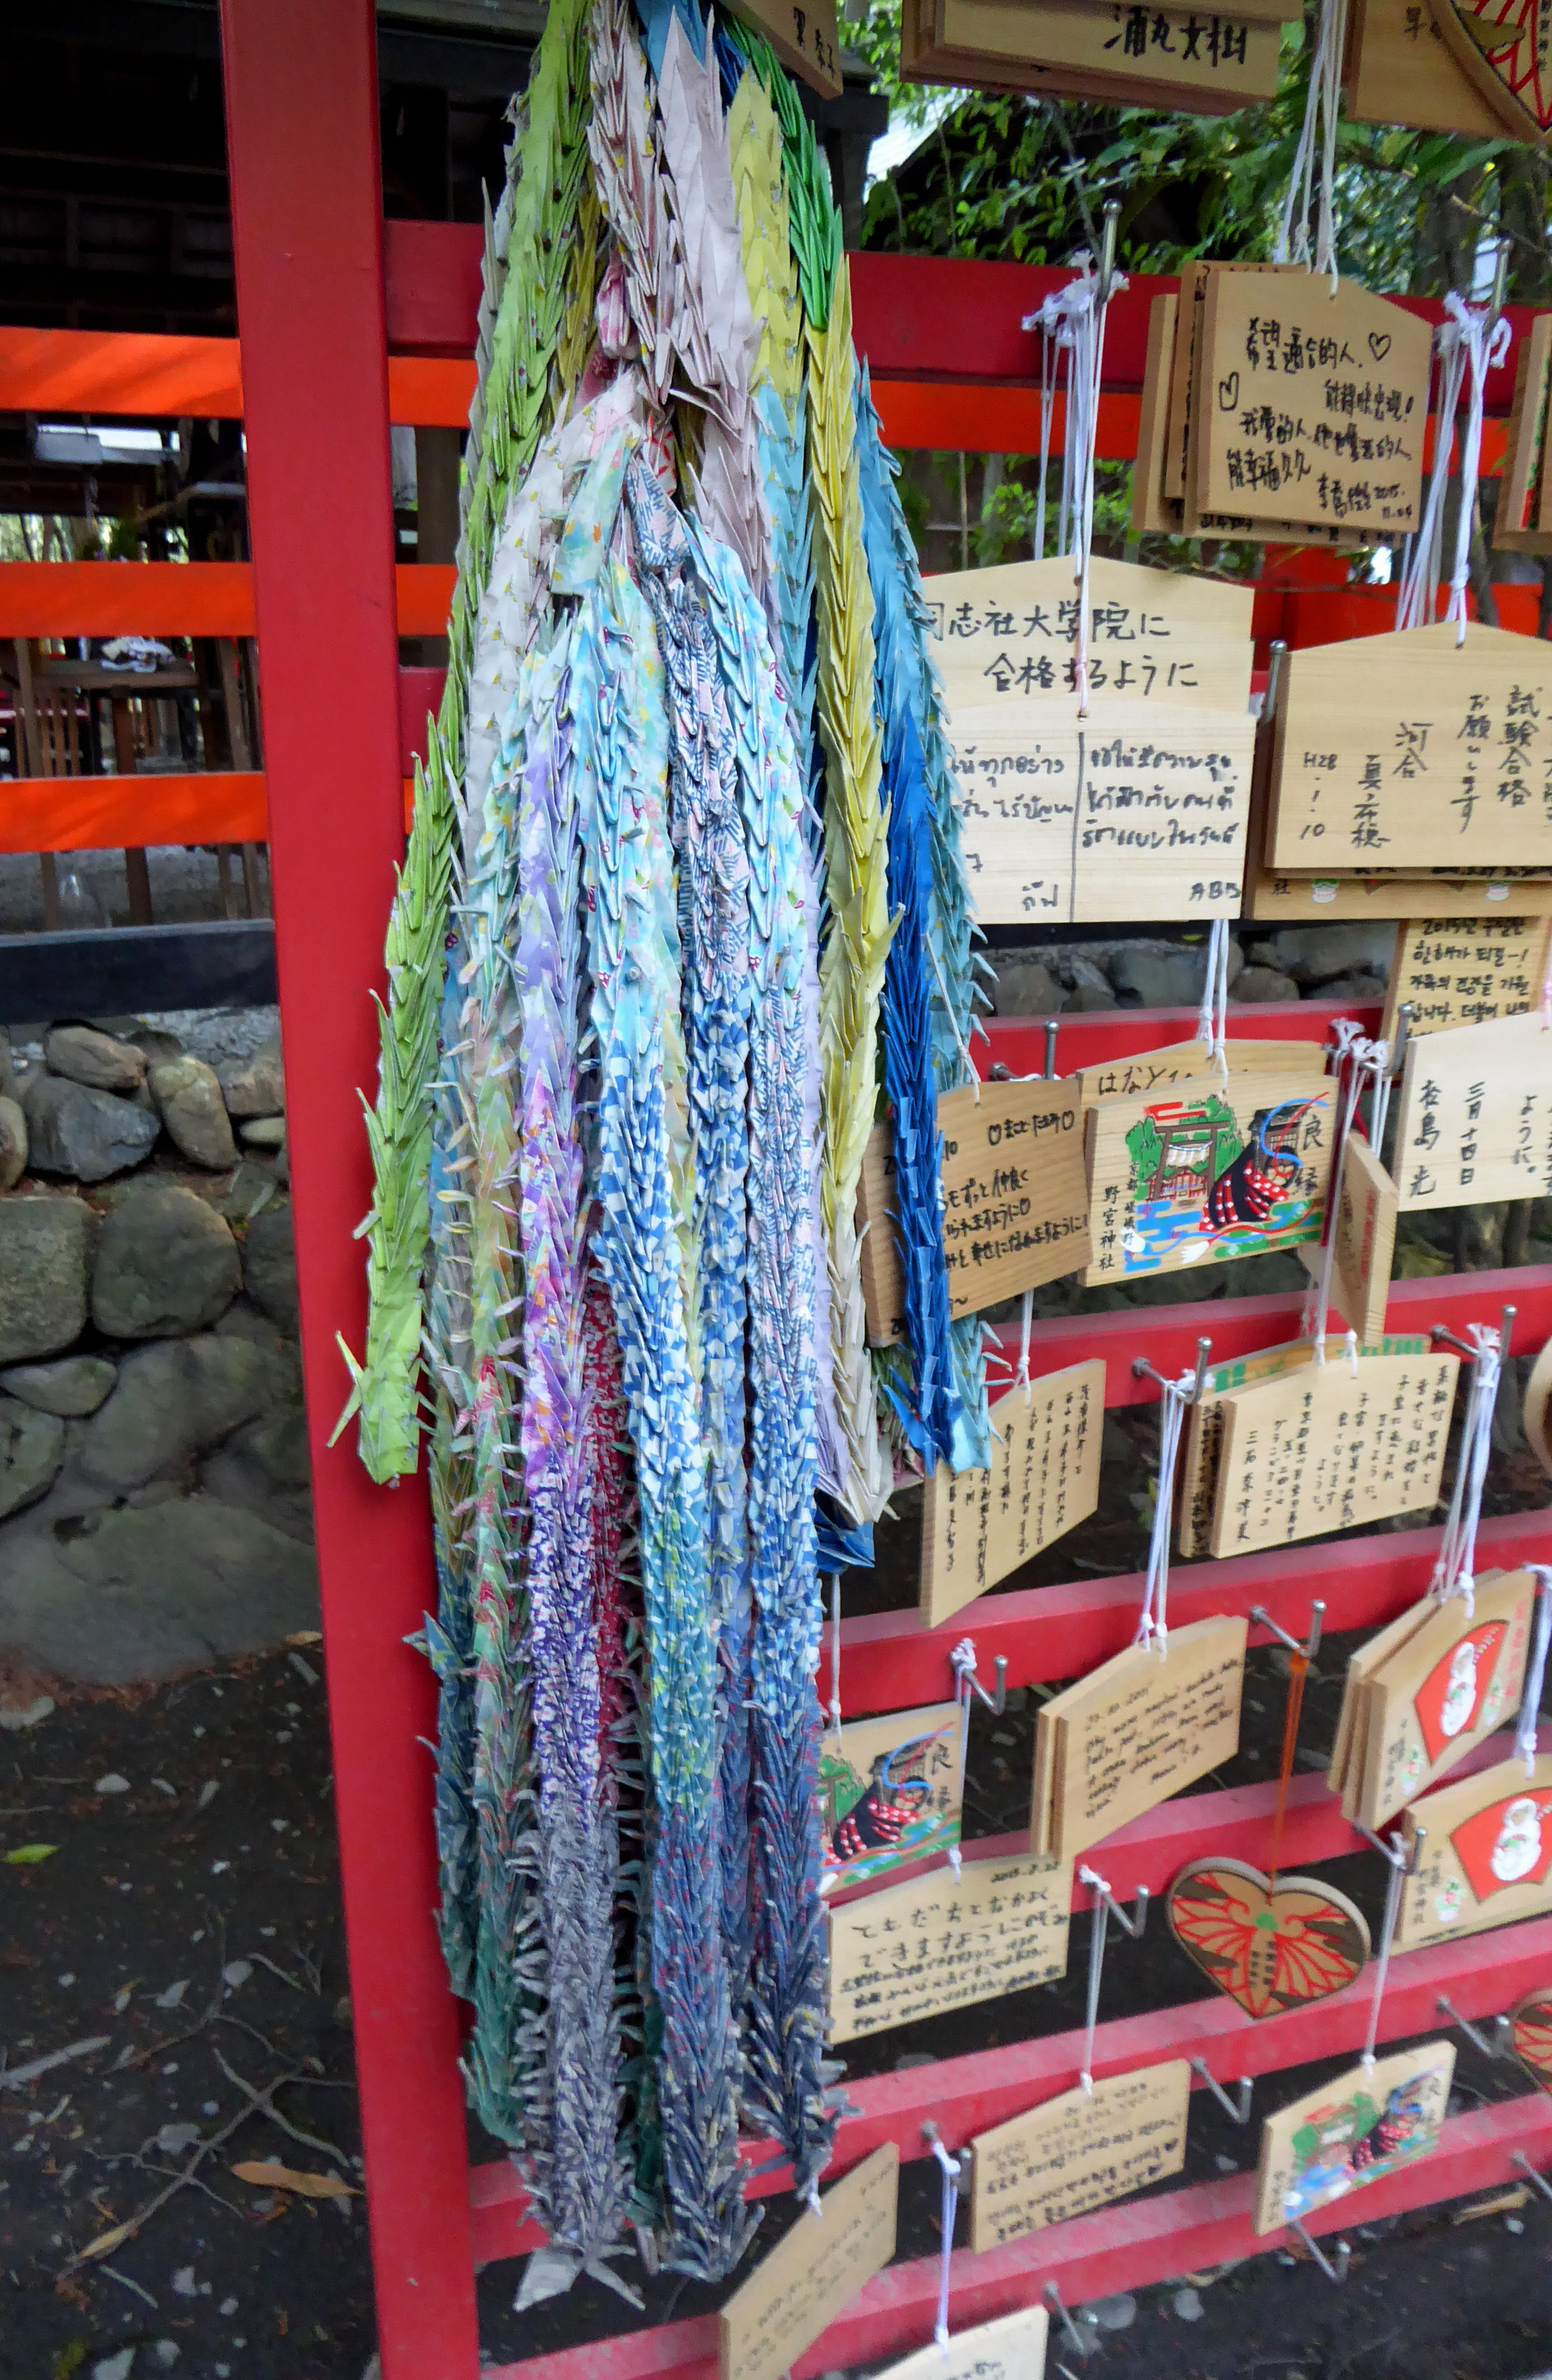 These thousands of cranes are left with wishes at shrines throughout the city.